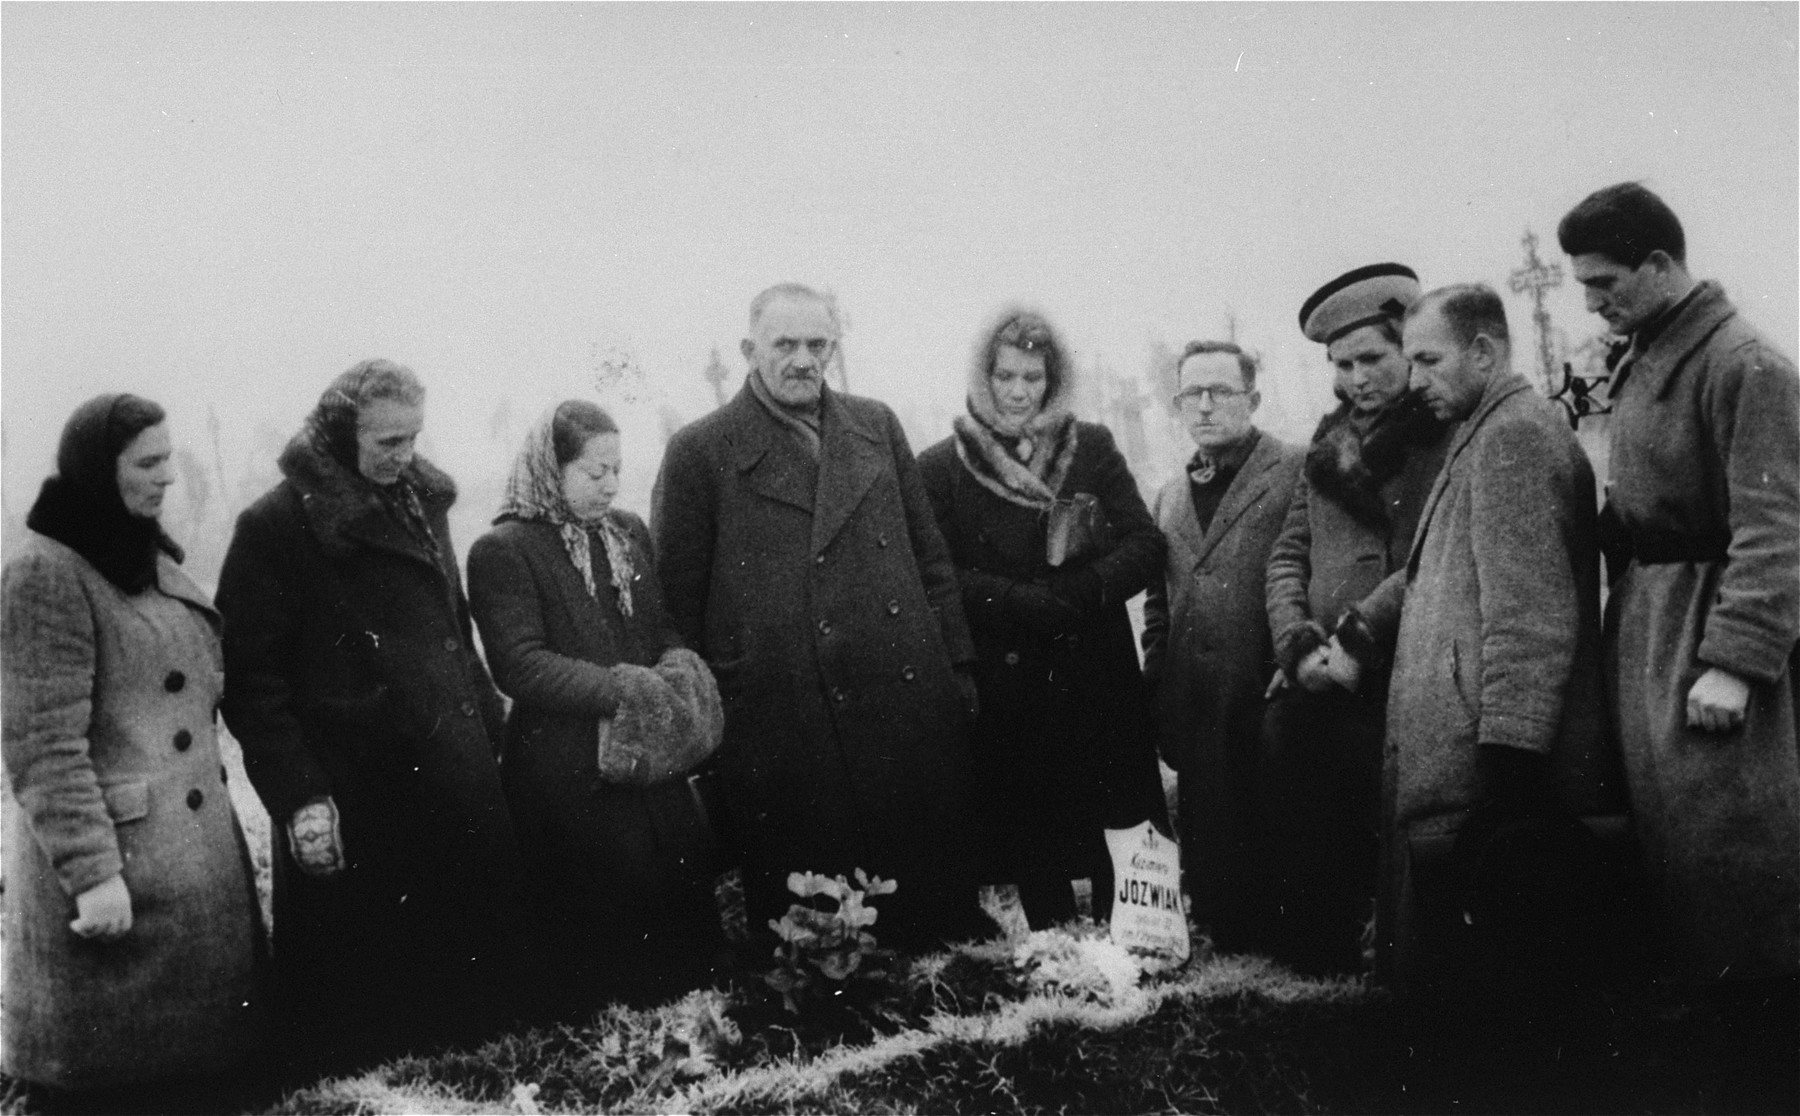 Funeral of Warsaw ghetto resister Gina (Regina) Klepfisz, in the Brodno Catholic cemetery.  Most of the people in attendance are Jews in hiding or Poles who are helping them.  Pictured from left to right are: Edzia Korman (Jewish); Anna Wachalska (a Polish woman who sheltered Michal Klepfisz and other Jewish resisters); Rozka Perczykof Klepfisz (Michal's wife); unidentified; Maria Sawicka (Anna Wachalska's sister, who also sheltered Jews);? Zuknadel; Krysia Tylberg; ? Czyzyk;  and Jasio Starker.